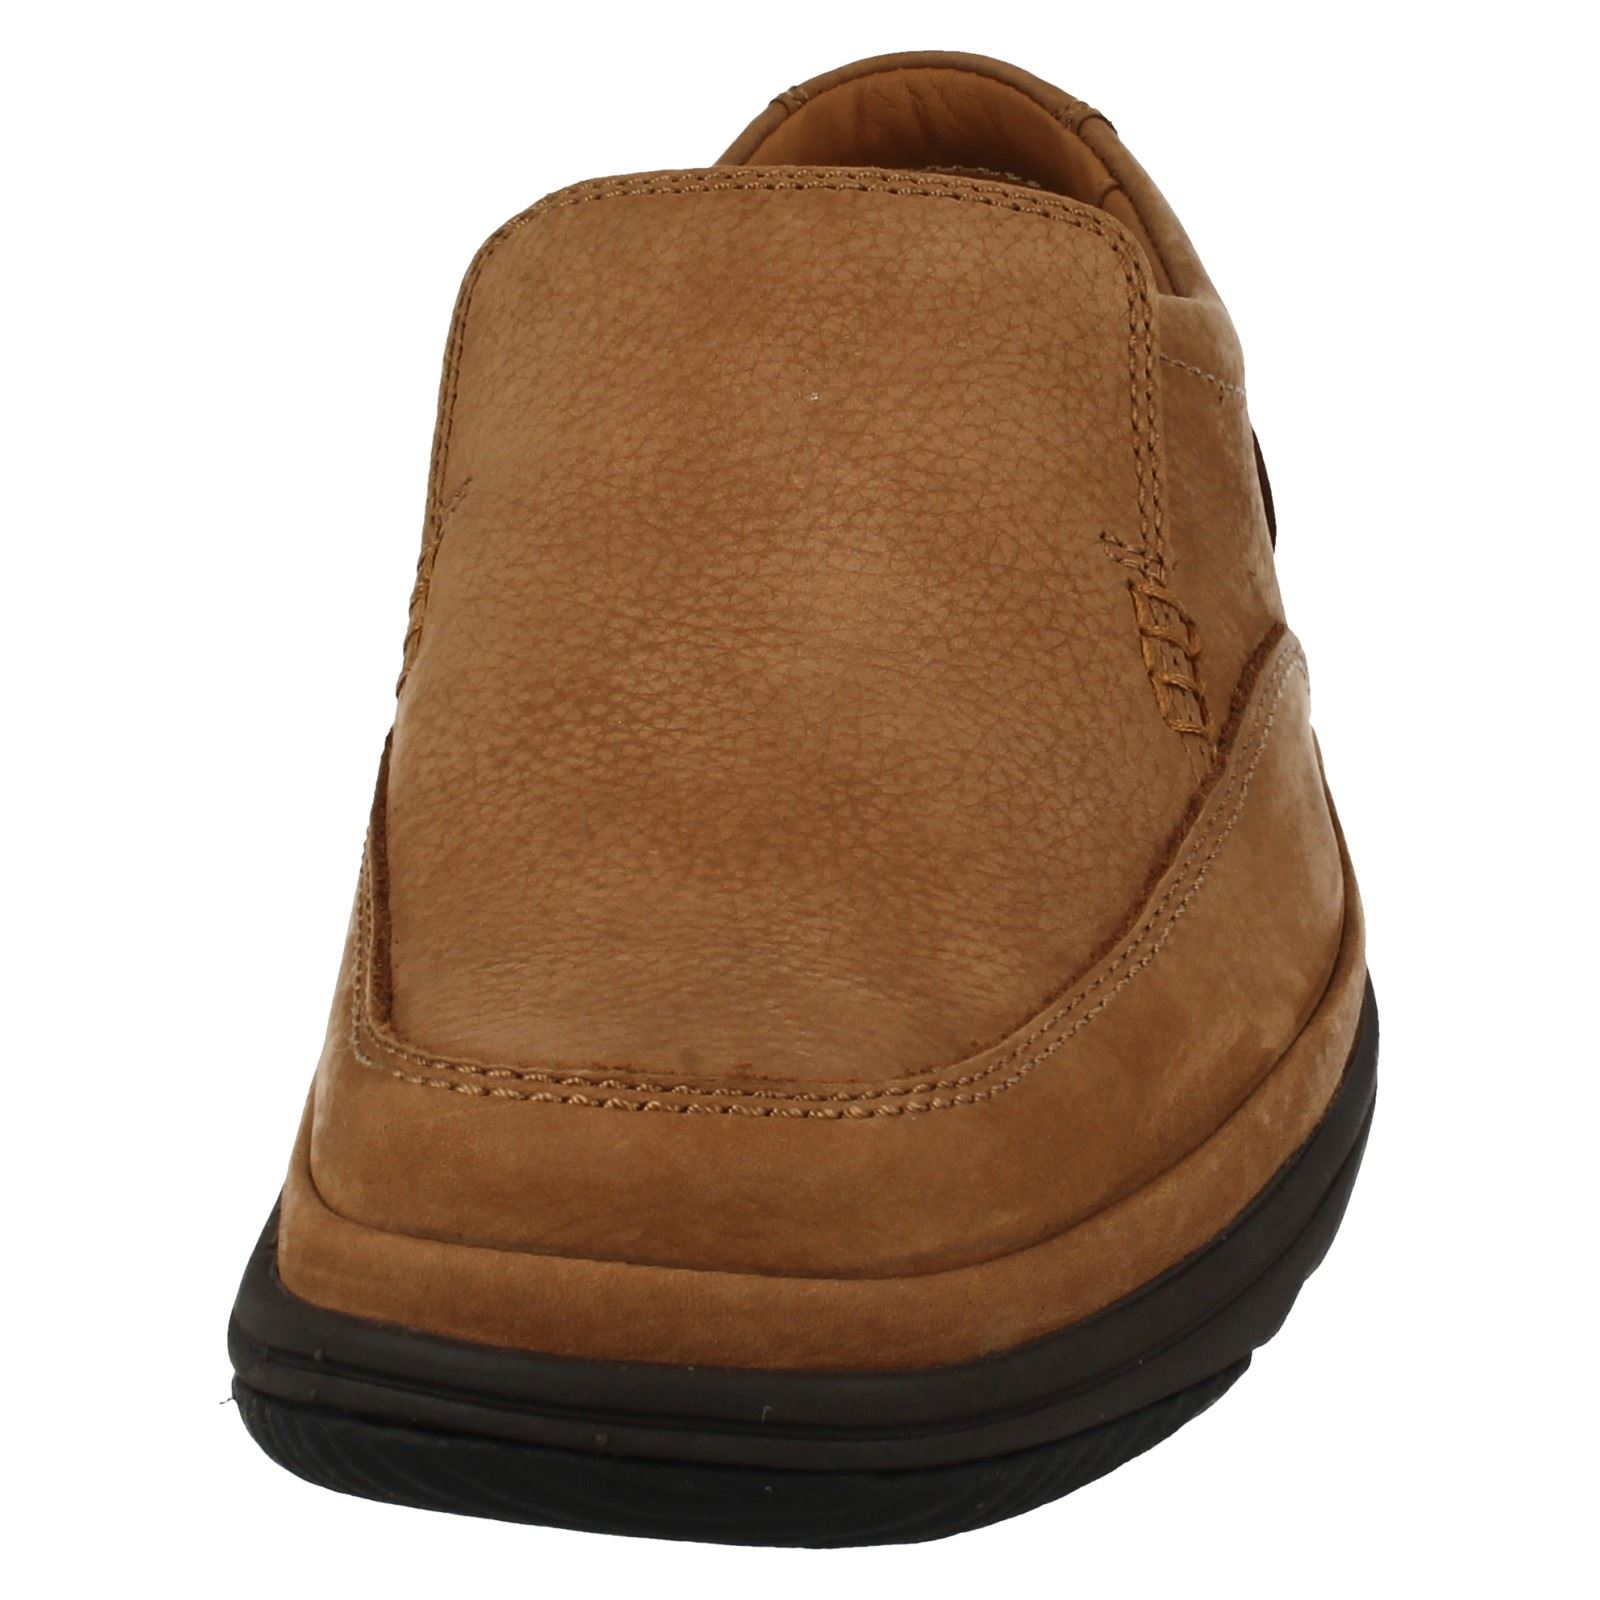 'Mens Clarks' Rounded Toe Flexlight Wide Fitting Slip Step On Shoes - Swift Step Slip 6dcc9c